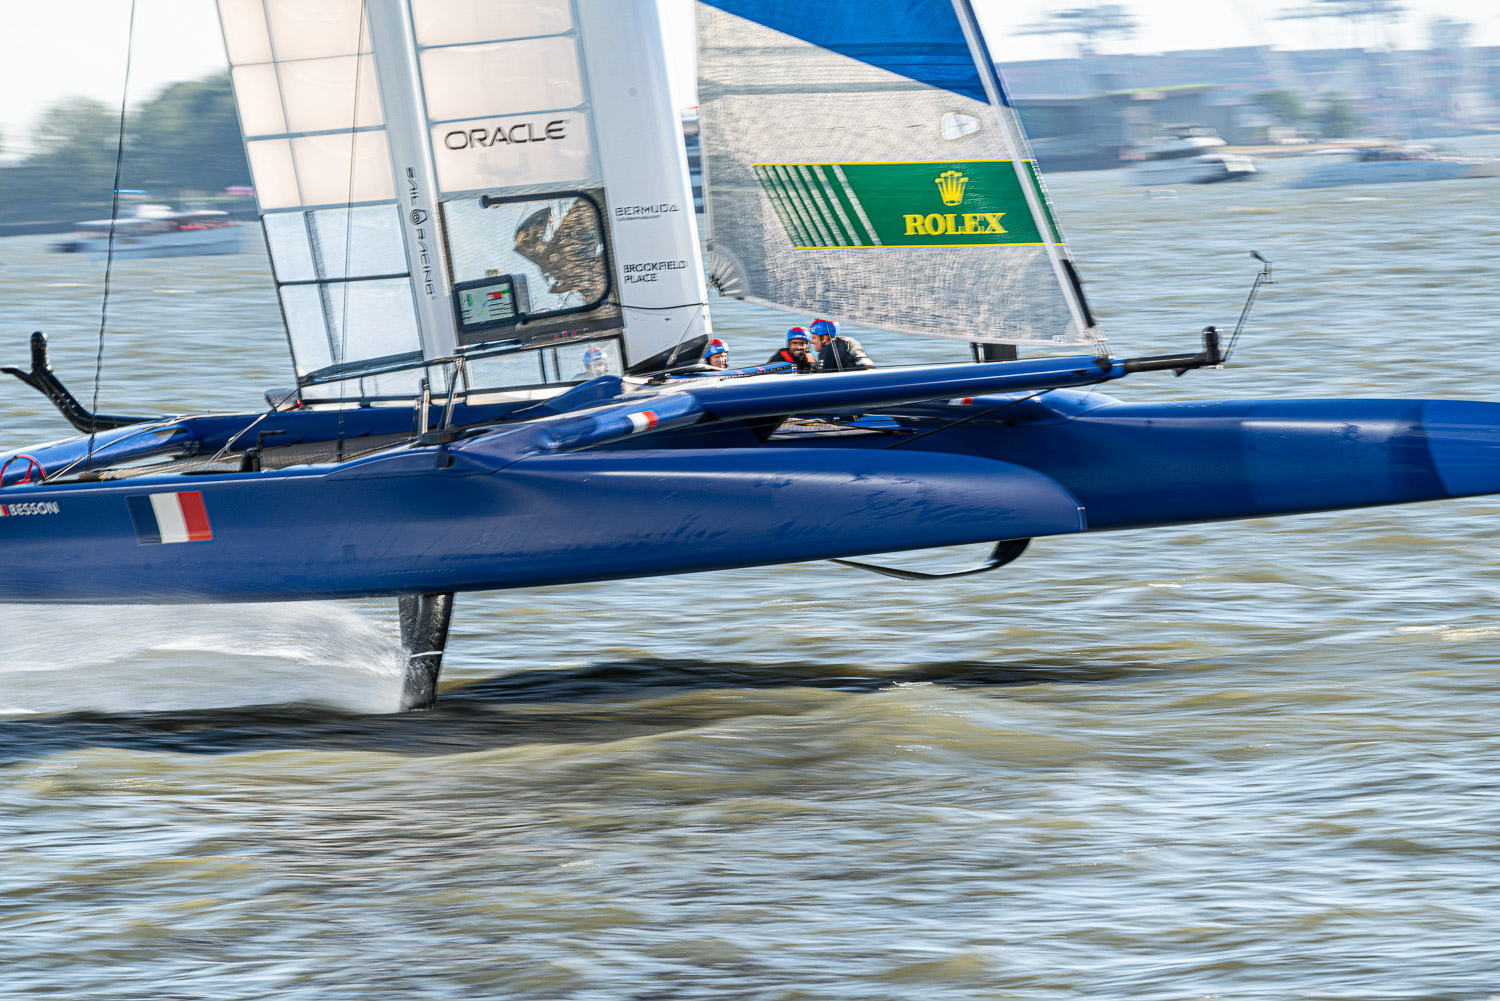 Great Britian Sail GP boat flying by the stuatue of liberty on her hydrofoils.  Speeds reach 60 mph and the boat barely touches the water. These cat boats are insane..jpg